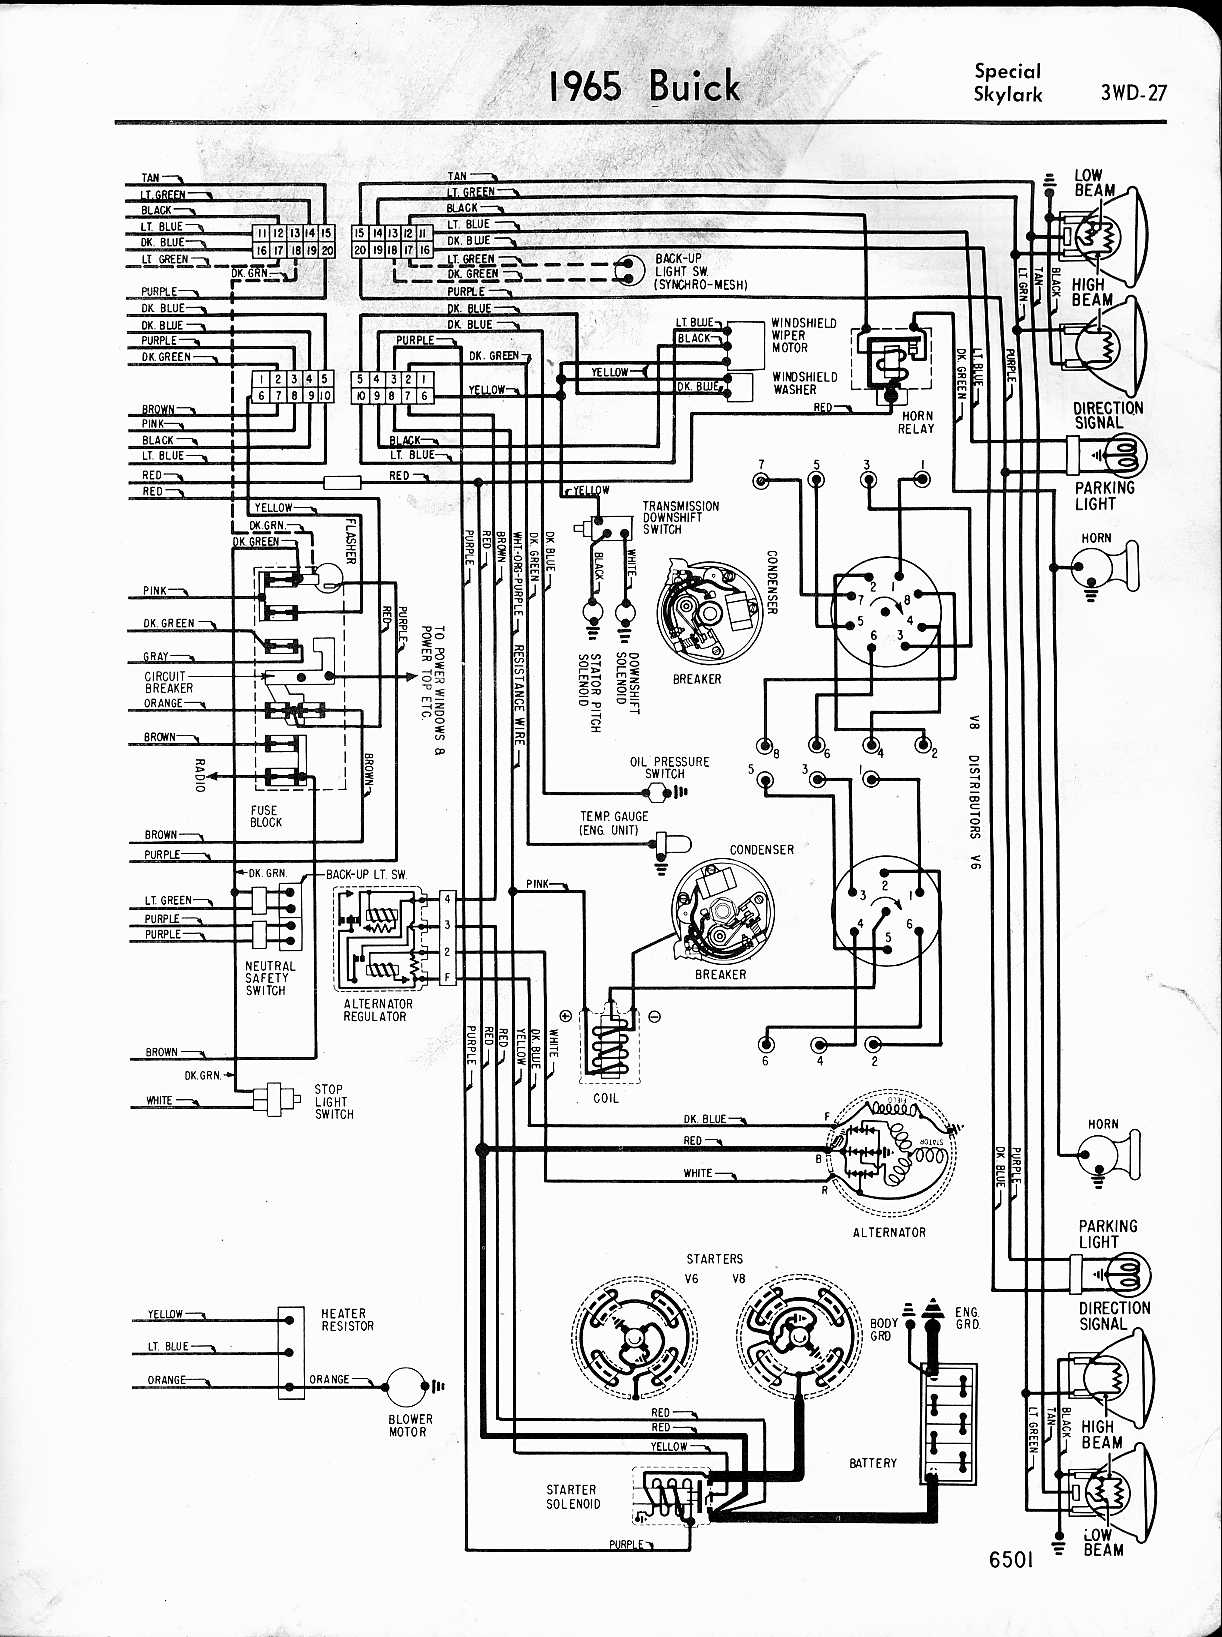 original wiring diagram of 1965 comet